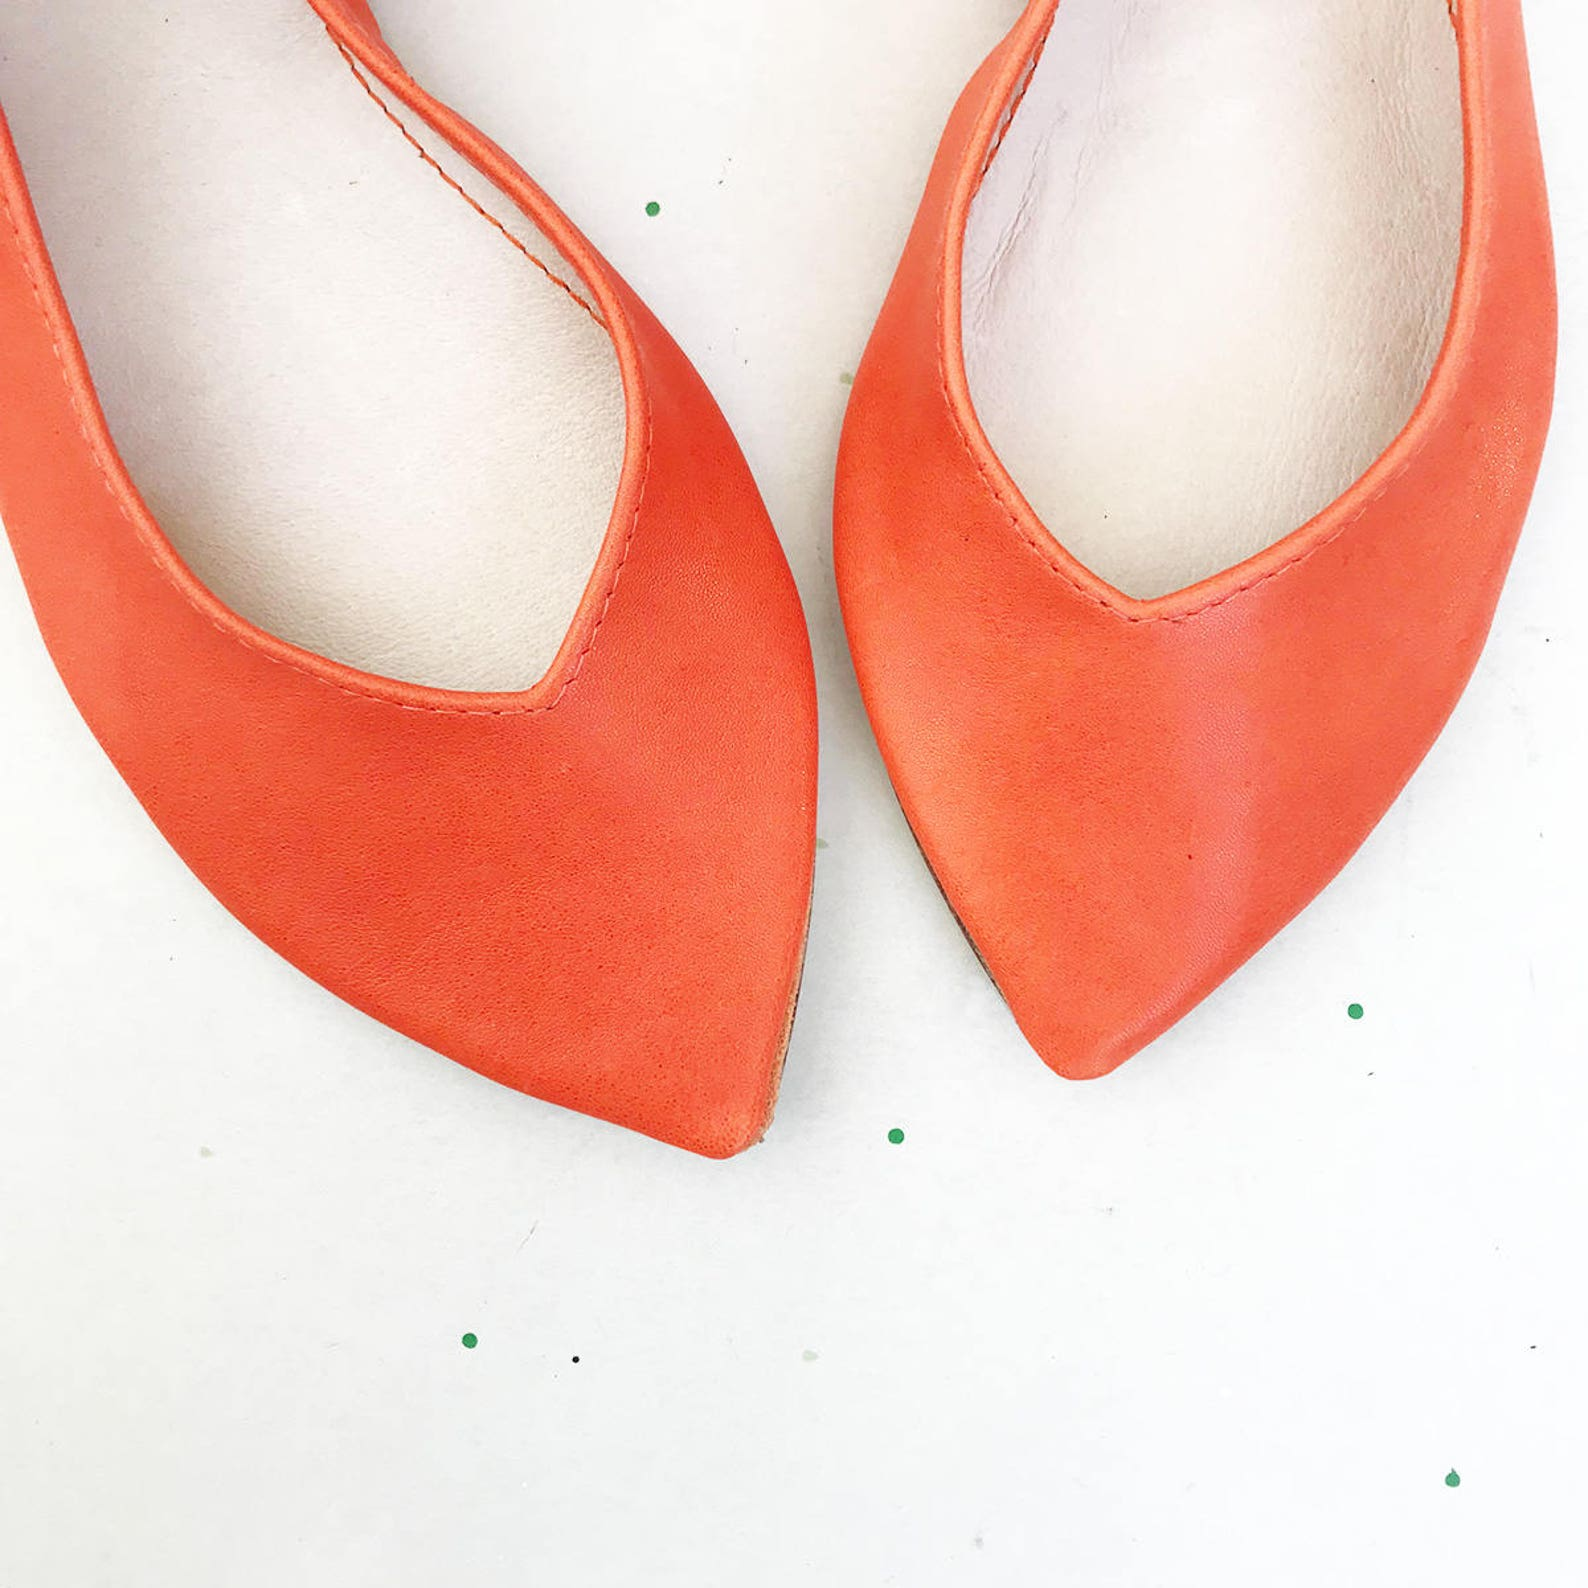 shoes on sale, 20% off, size 40, ready to ship, pointy shoes ballet flats in tangerine orange leather, elehandmade shoes, 90s fl